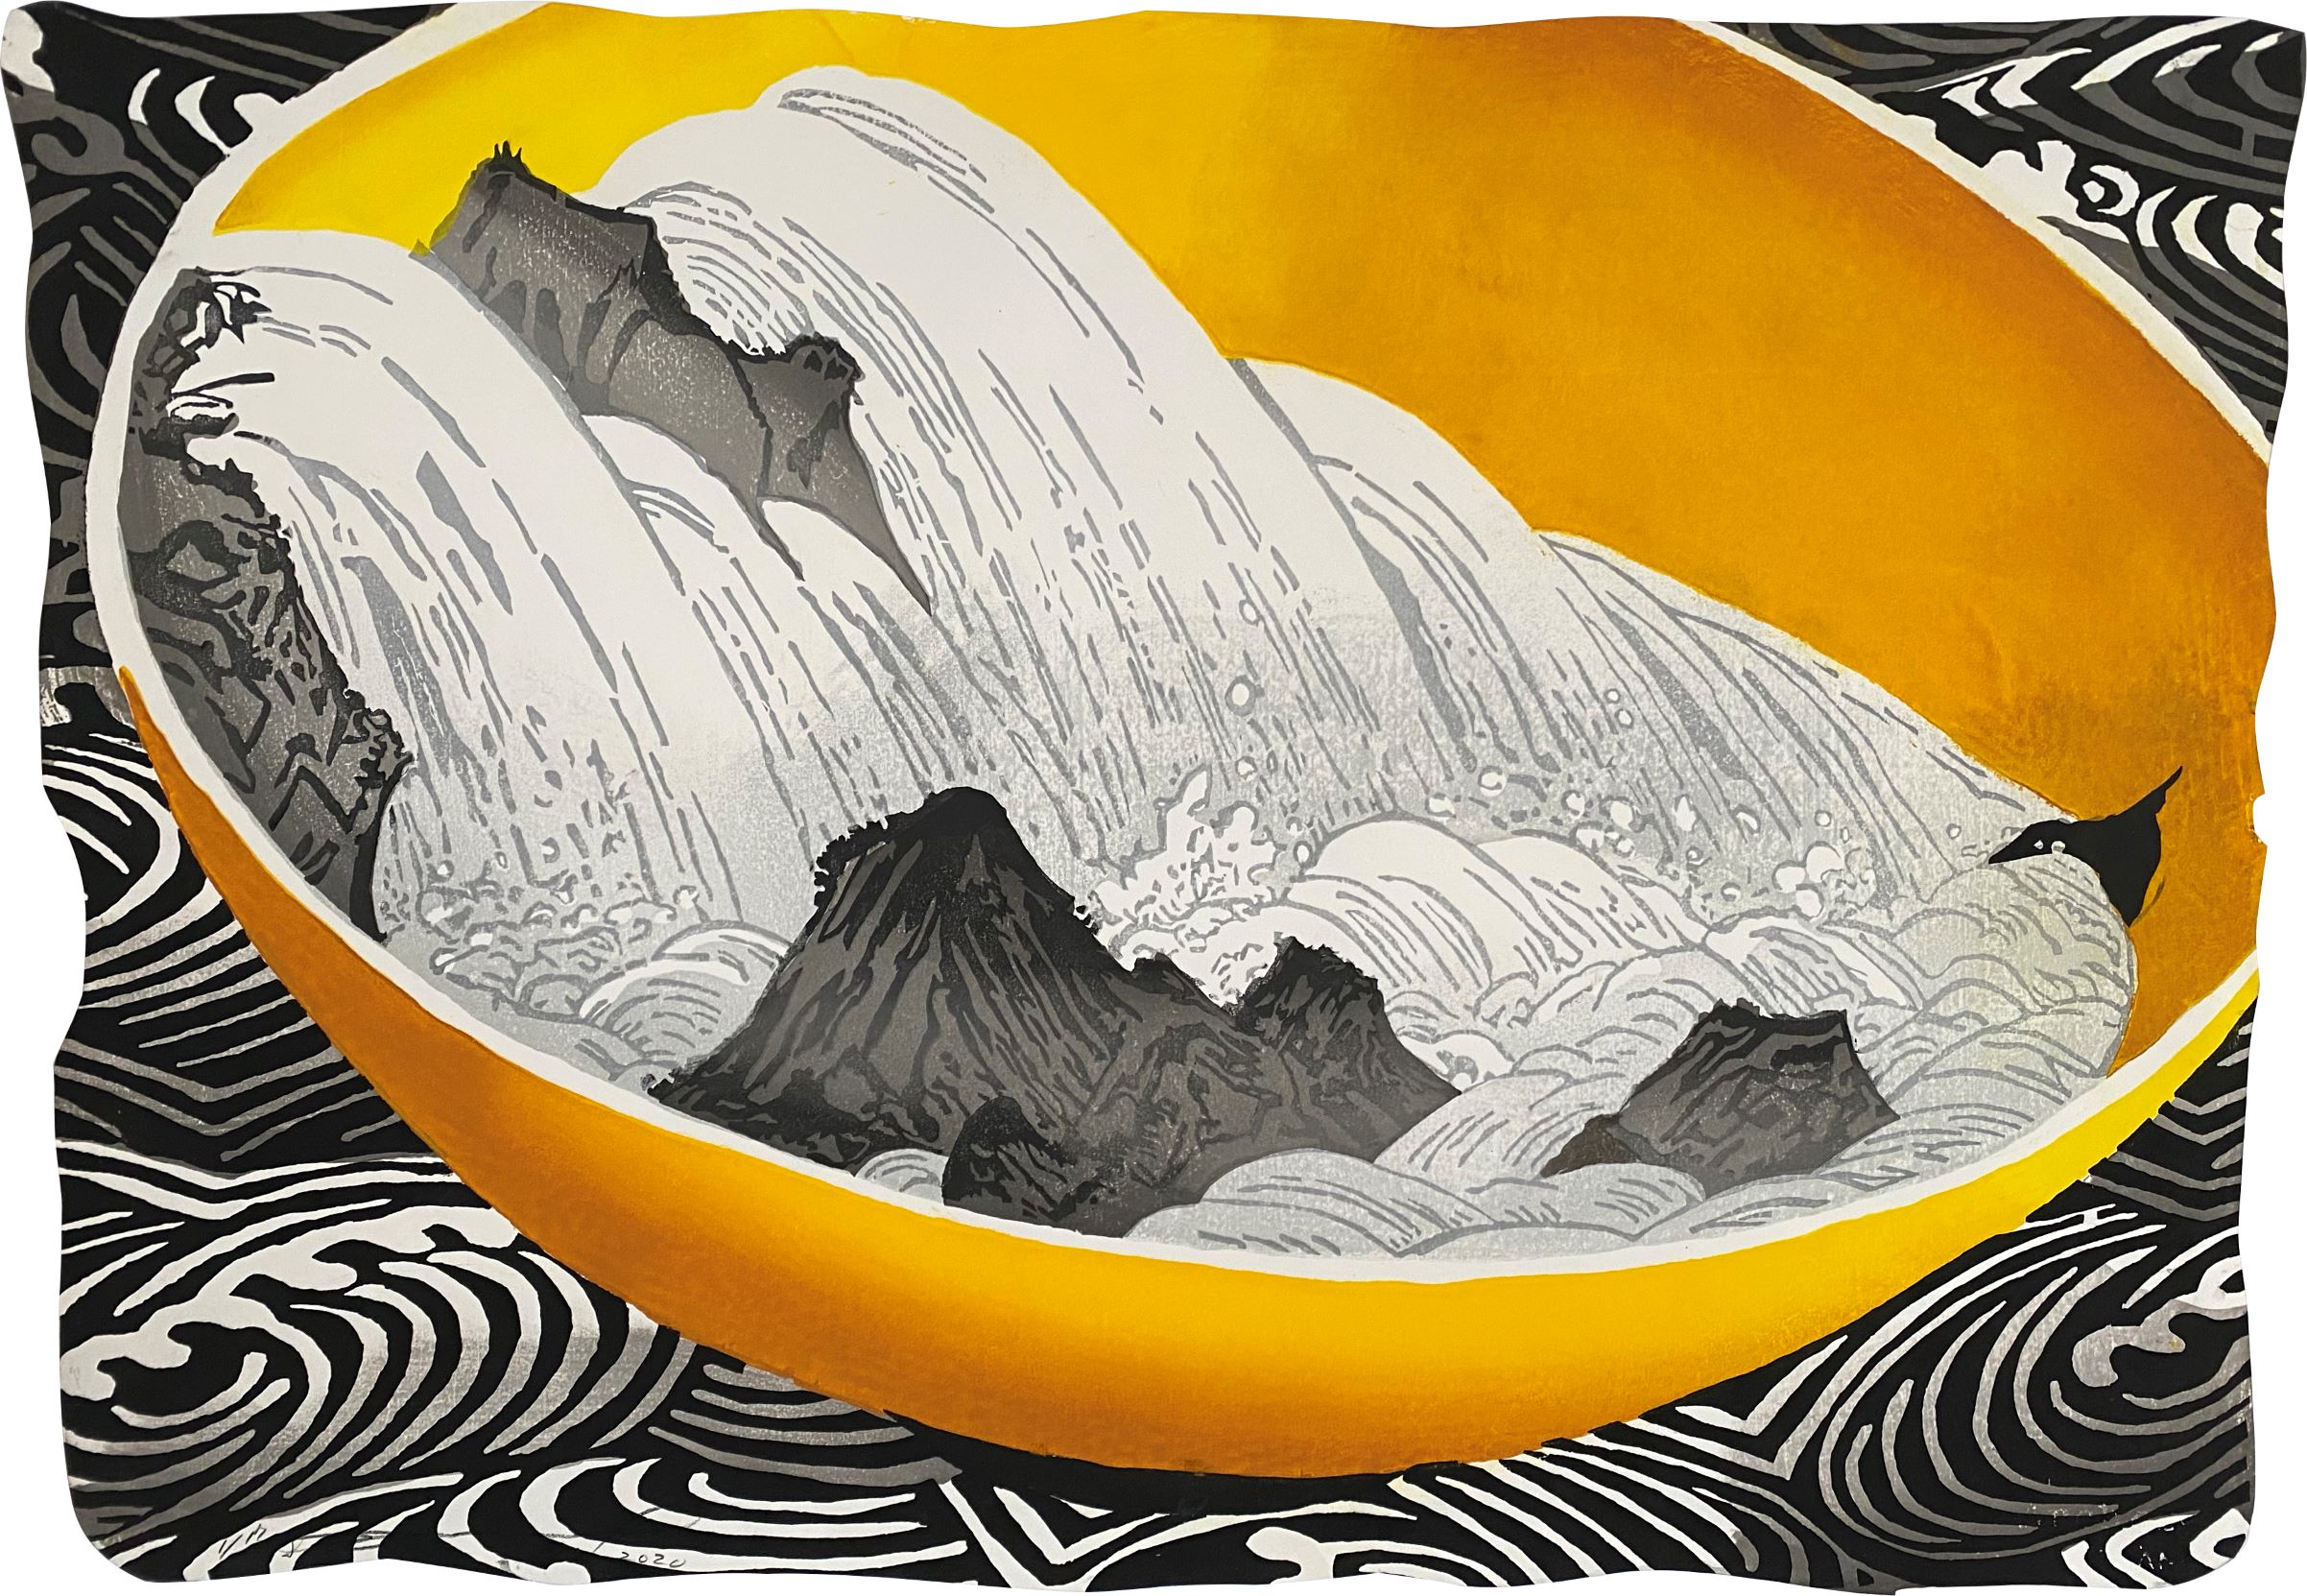 """Daniel Kelly - """"Whirlpool"""" - 2020, Woodblock and hand-colouring on Arches watercolour paper, Ed of 17, Sheet size 53 x 75 cm"""